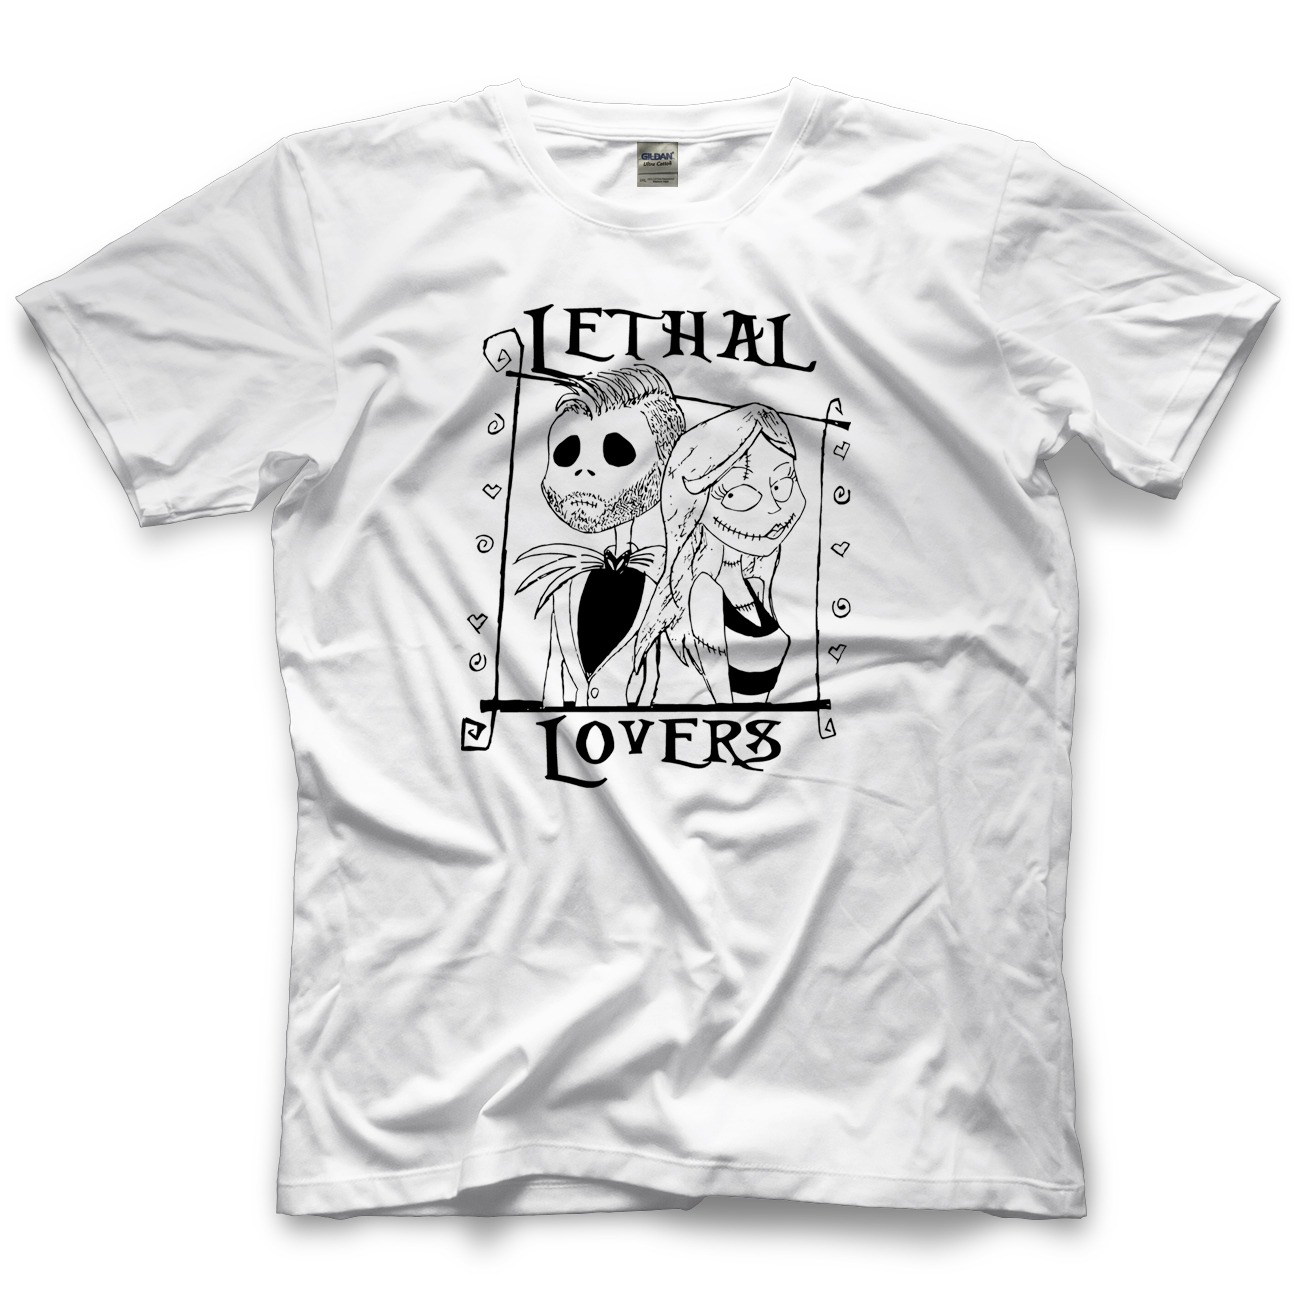 Lethal Lovers White T-shirt